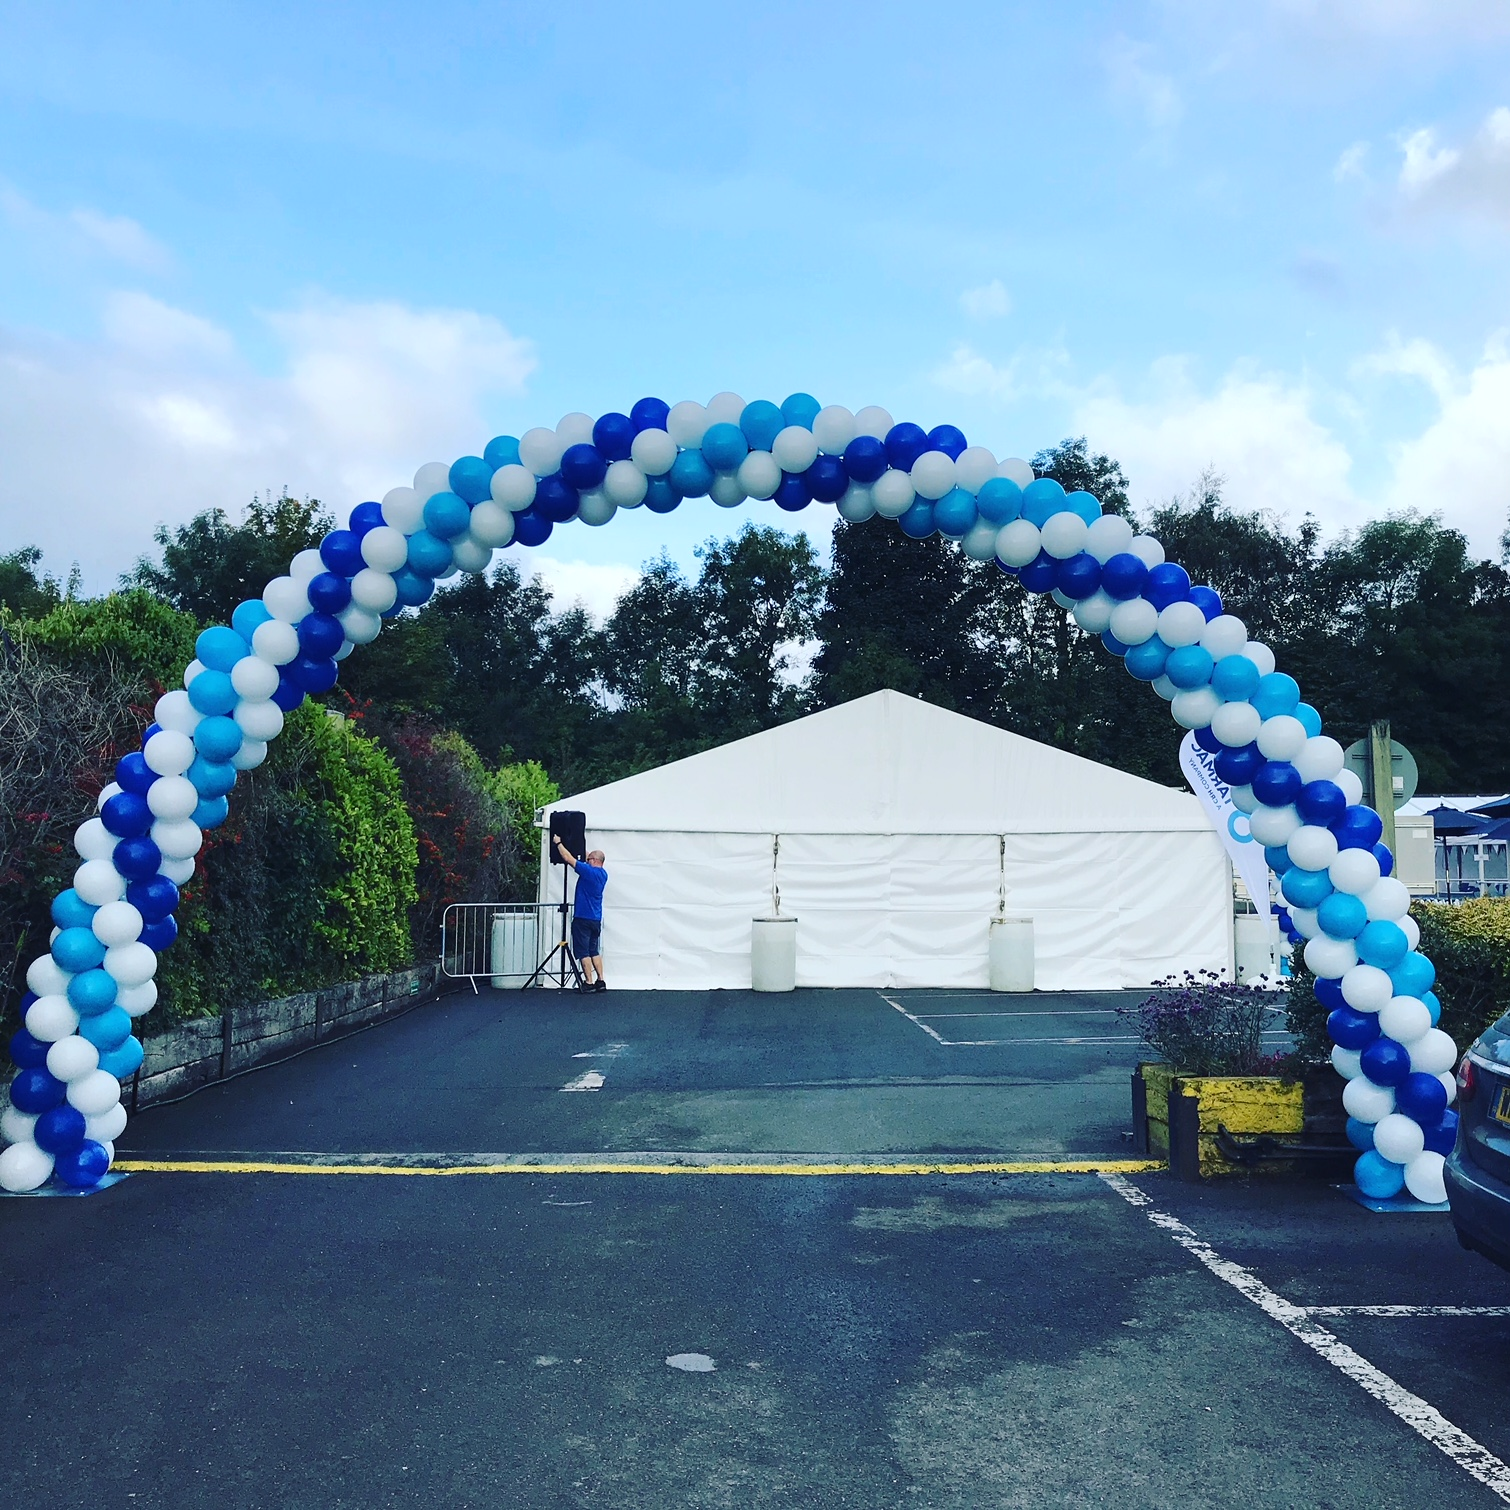 Giant Balloon Arch for Tarmac